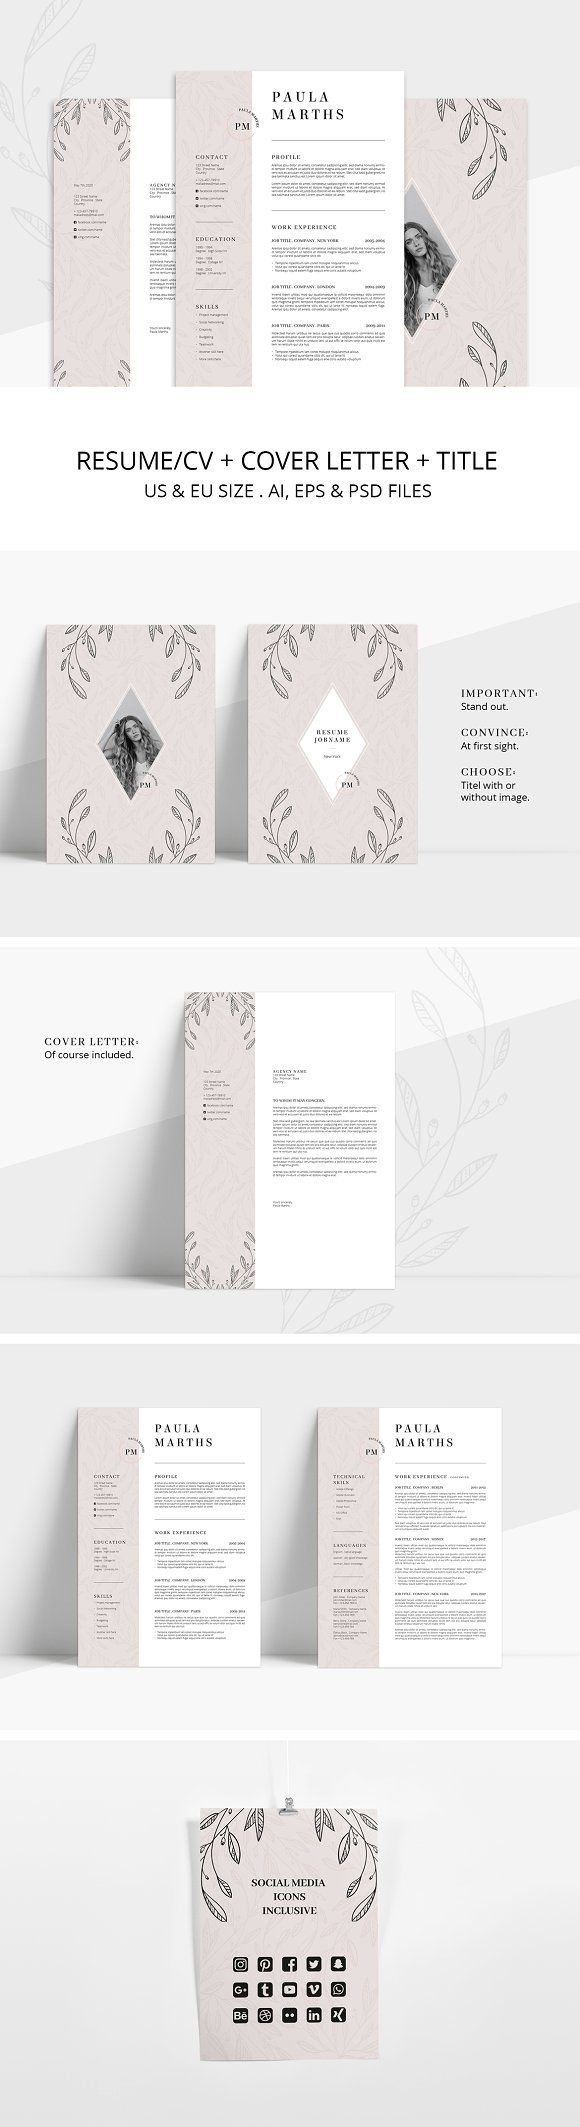 FLORAL Resume/CV + Cover Letter by AgataCreate on @creativemarket